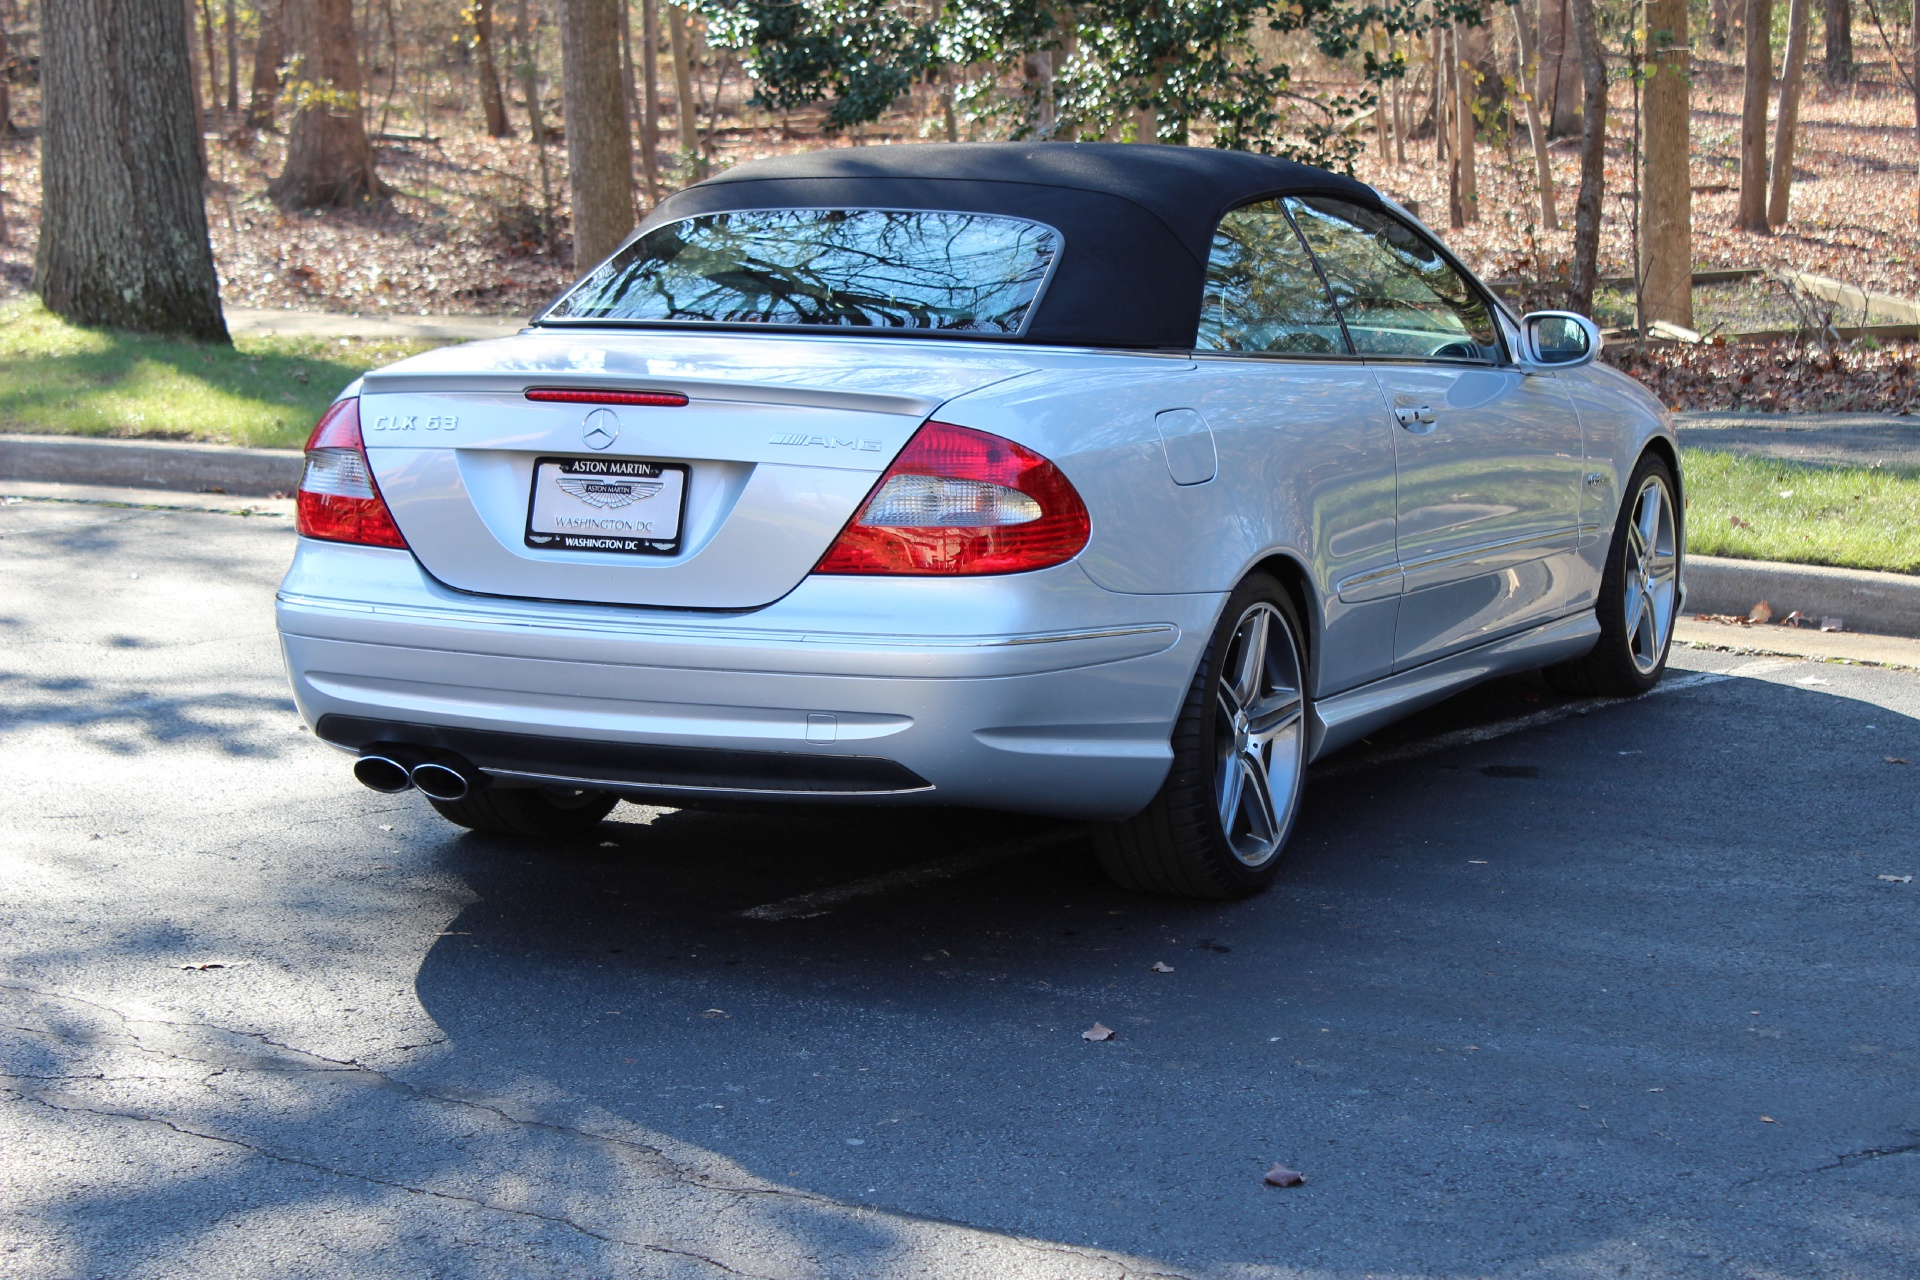 2007 mercedes benz clk63 amg clk63 amg stock p084288 for for Mercedes benz tysons service